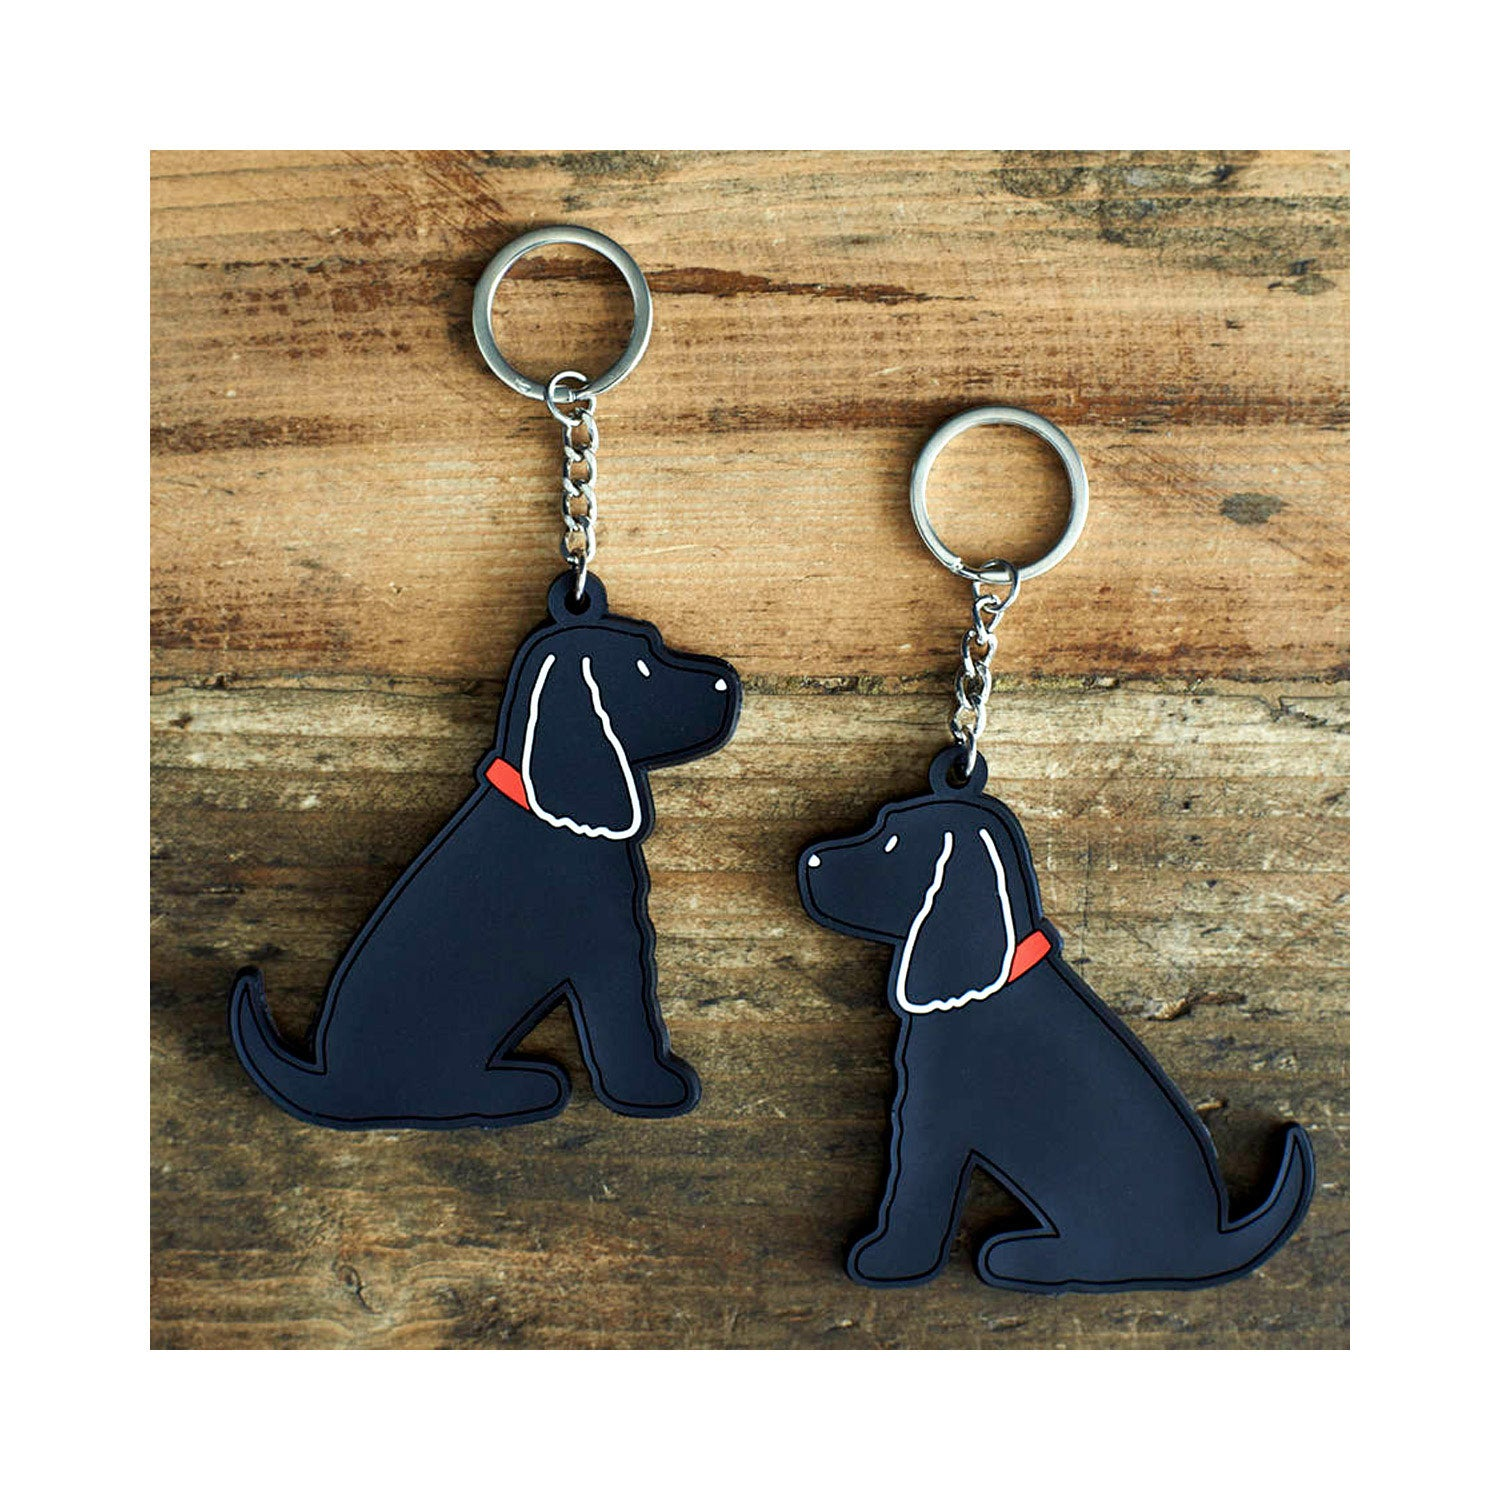 Dog Lover Gifts available at Dog Krazy Gifts  - Hugo The Black Cocker Spaniel Keyring - part of the Sweet William range available from Dog Krazy Gifts